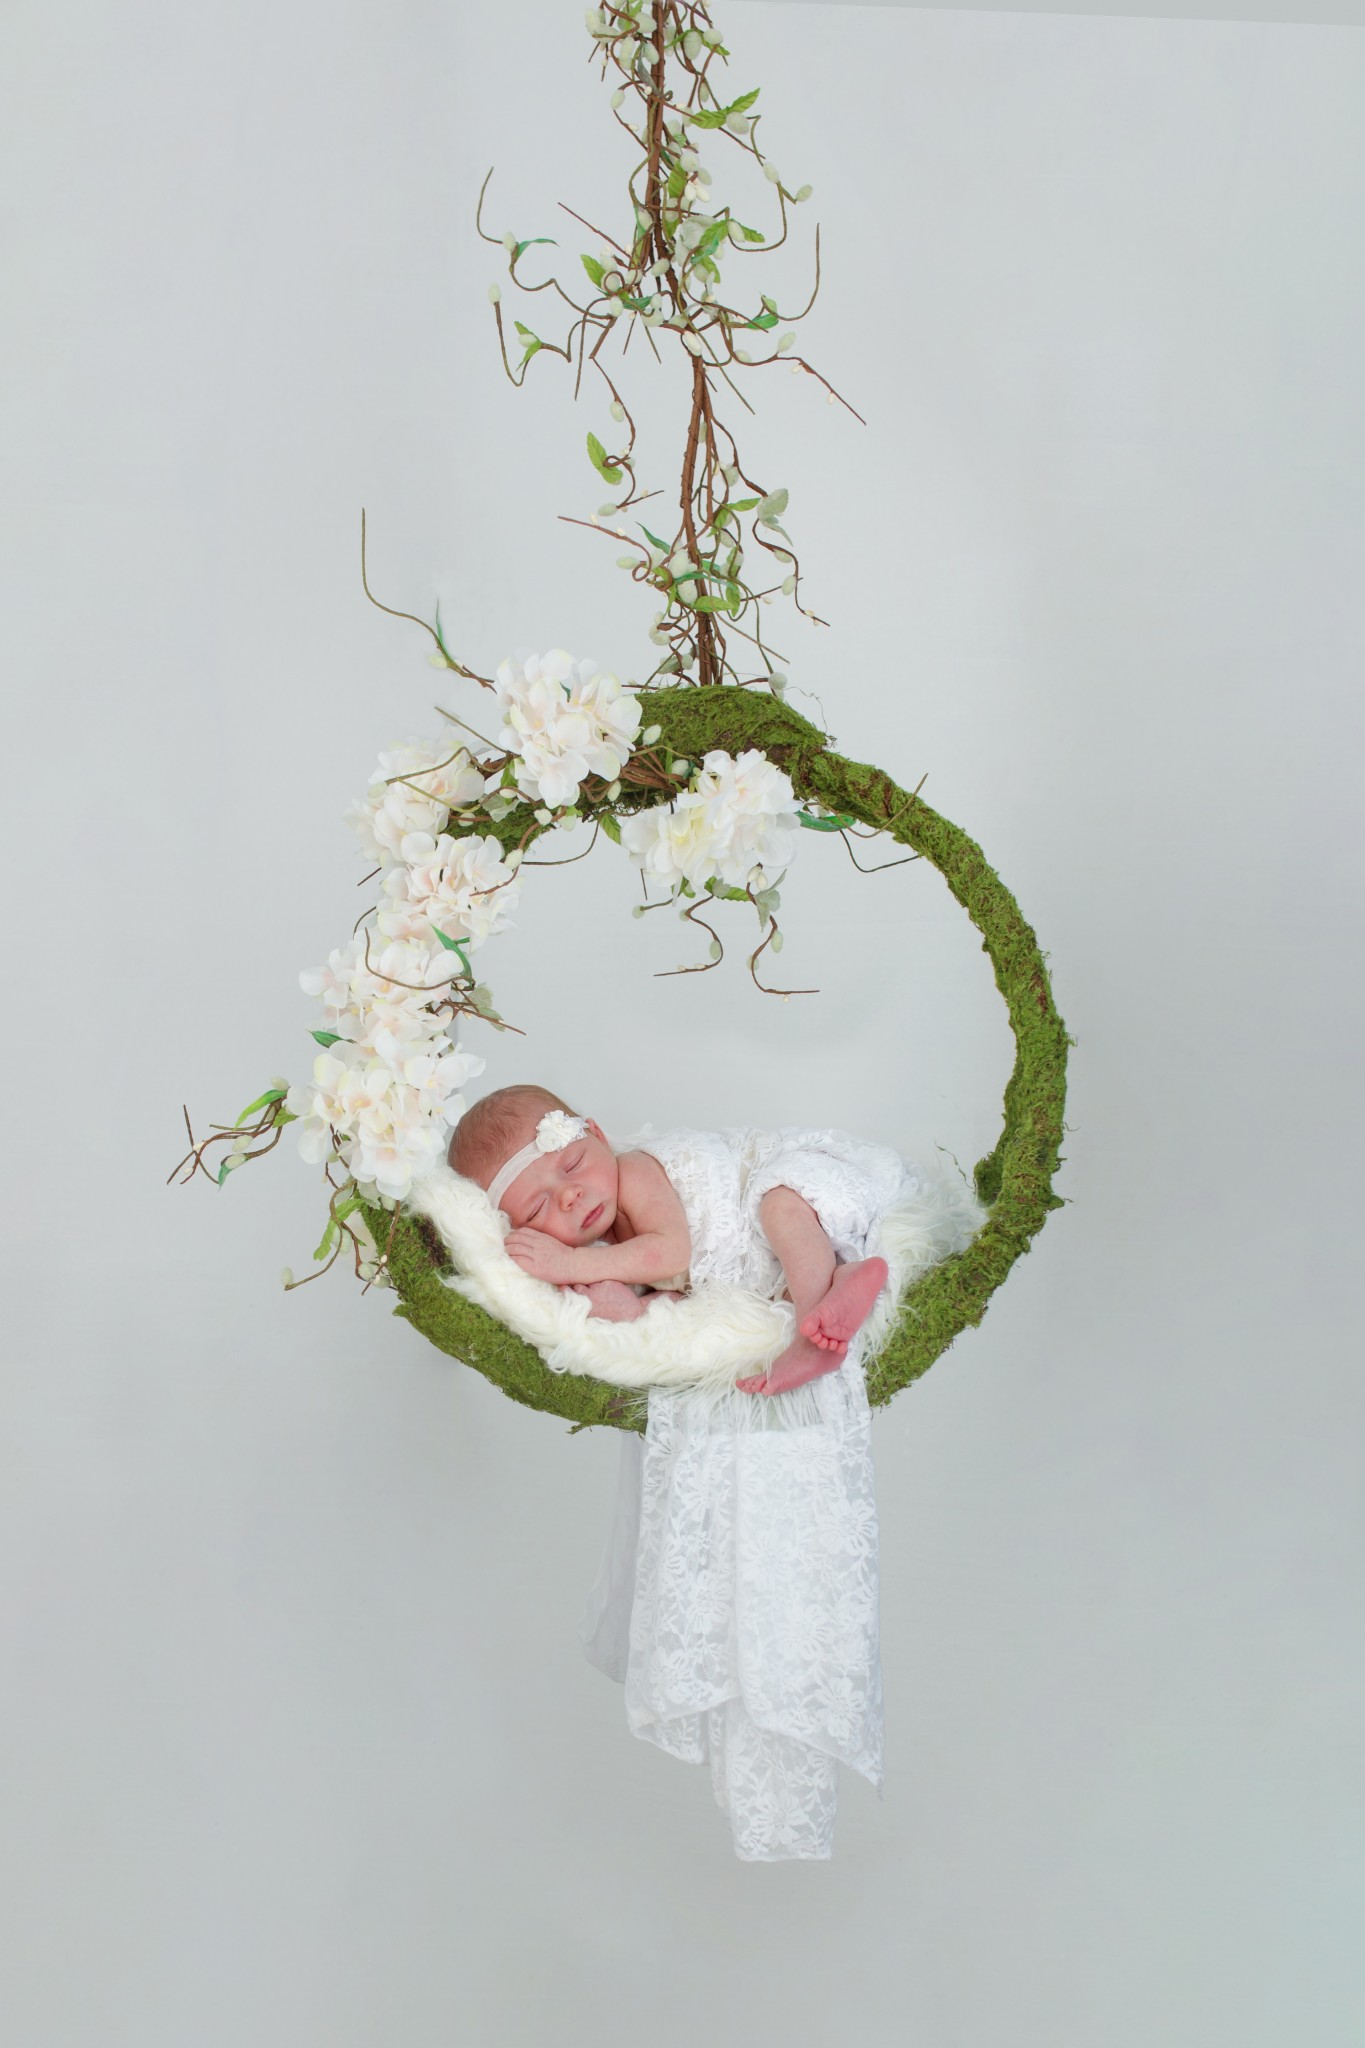 Composite newborn image of baby in floral and moss swing on a white background.